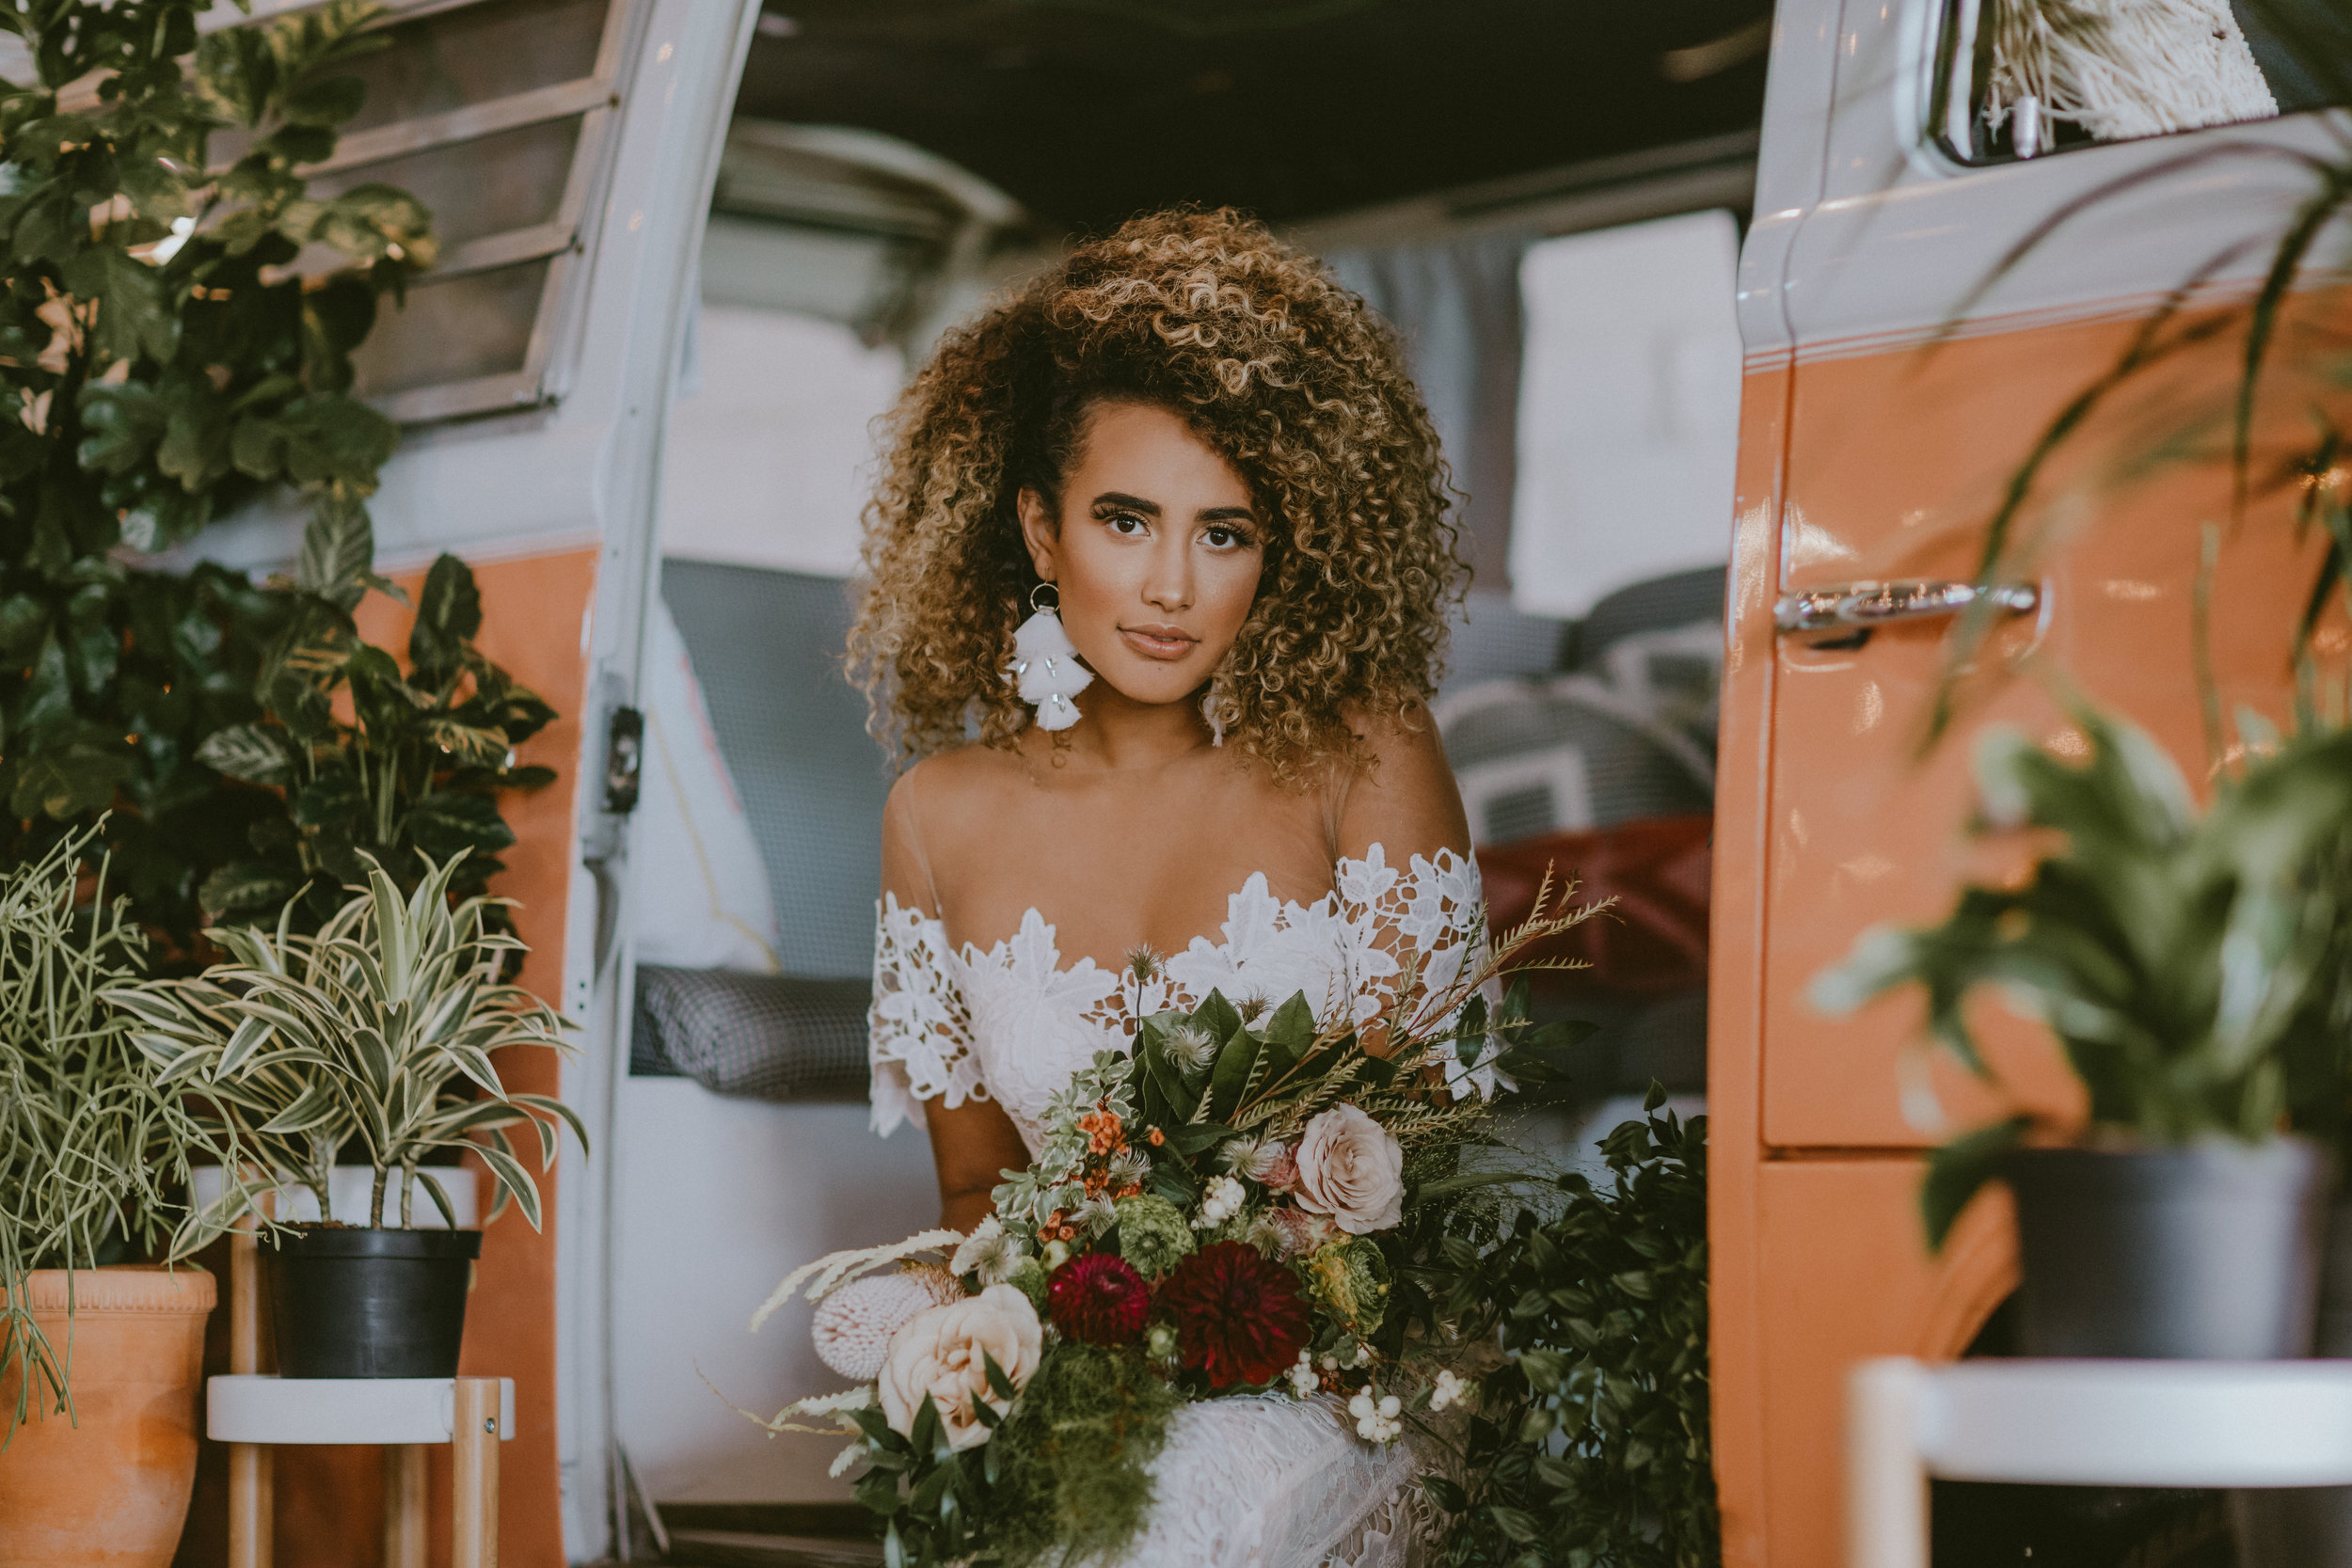 INDIE ROSE WORKSHOP - COMING SOON! Photography Workshop at The 4 Eleven in Fort Worth, TX, September 2018 // Styled by Heather Lane Events // Photography: Onyx + Ivory Photo and Film // Model: Aleja Briles